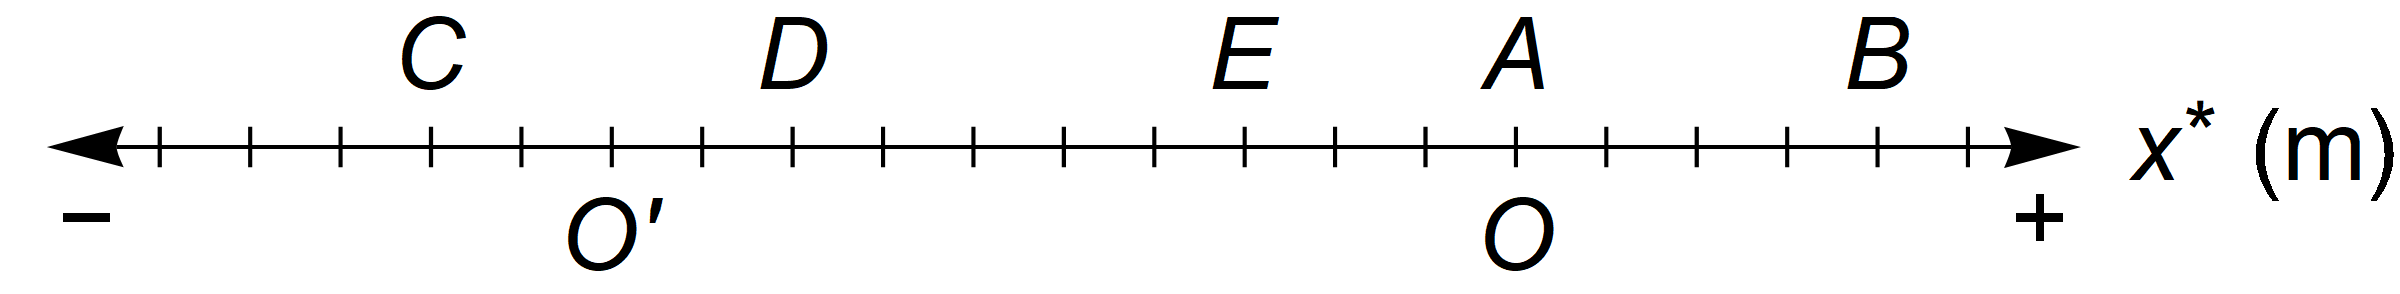 As before, \(x^*\) stands for either \(x\) or \(x'\), depending on whether \(O\) or \(O'\) is used as the axis origin, respectively.